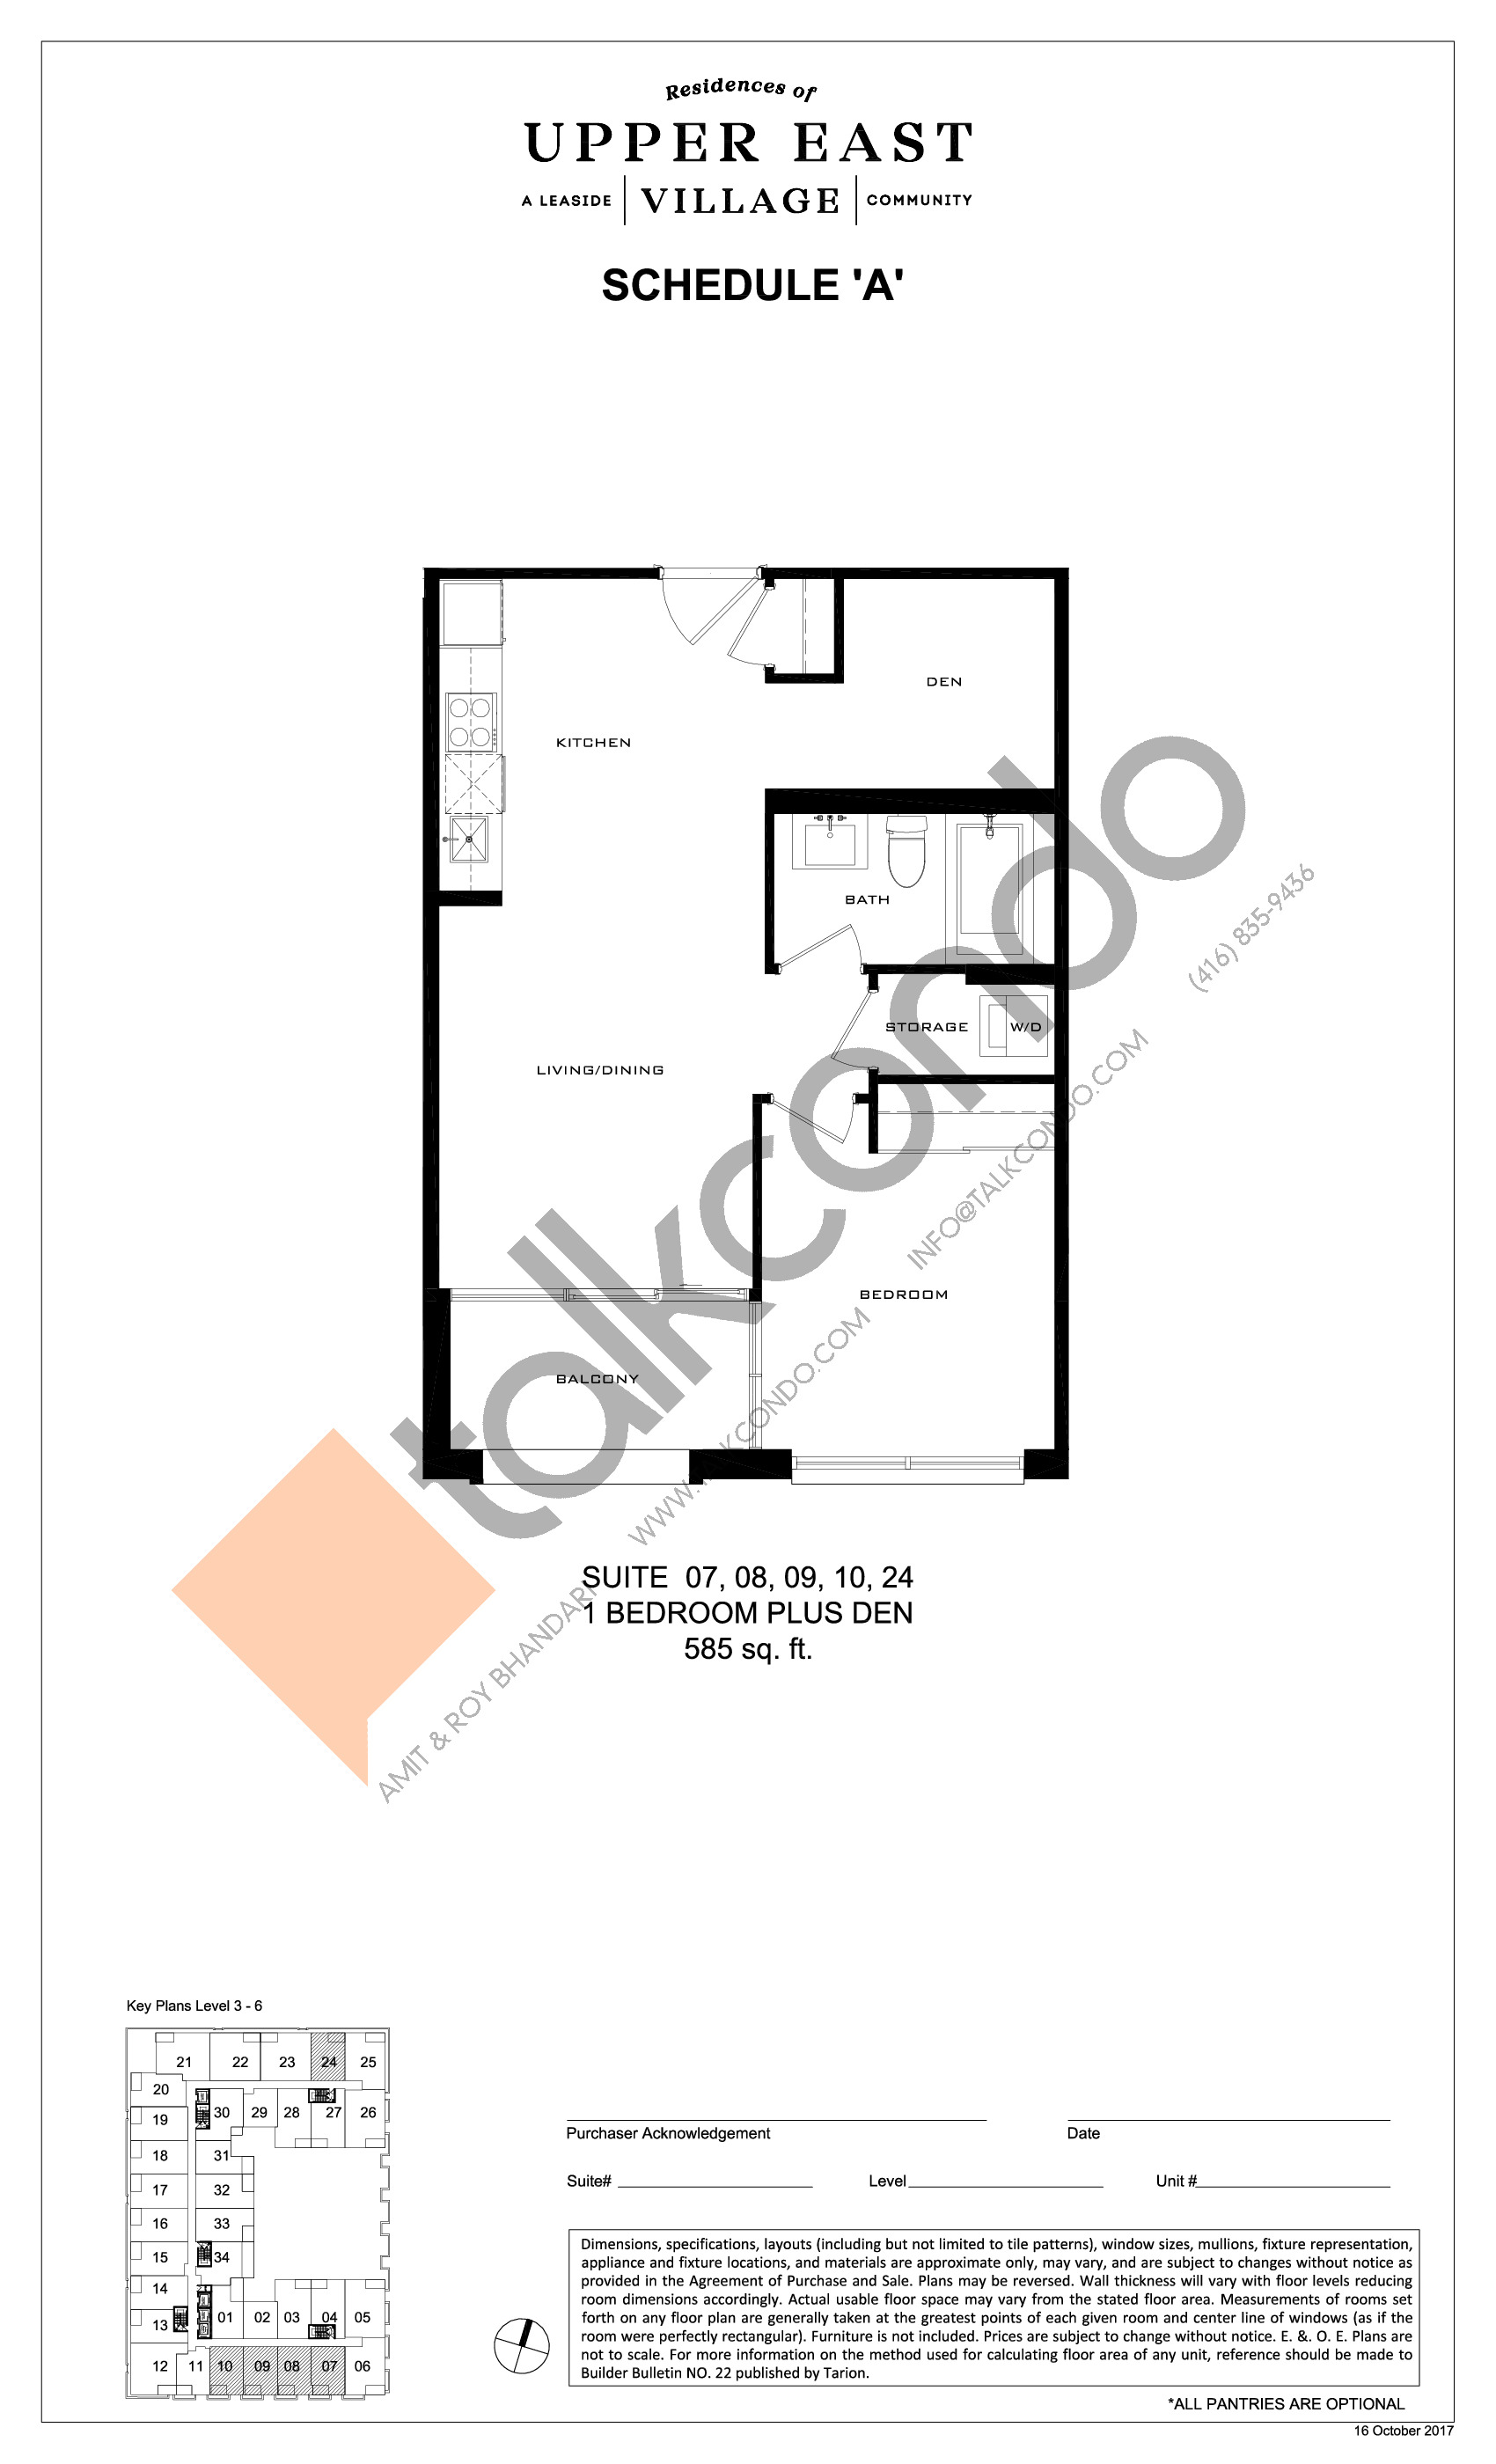 Suite 07, 08, 09, 10, 24 Floor Plan at Upper East Village Condos - 585 sq.ft